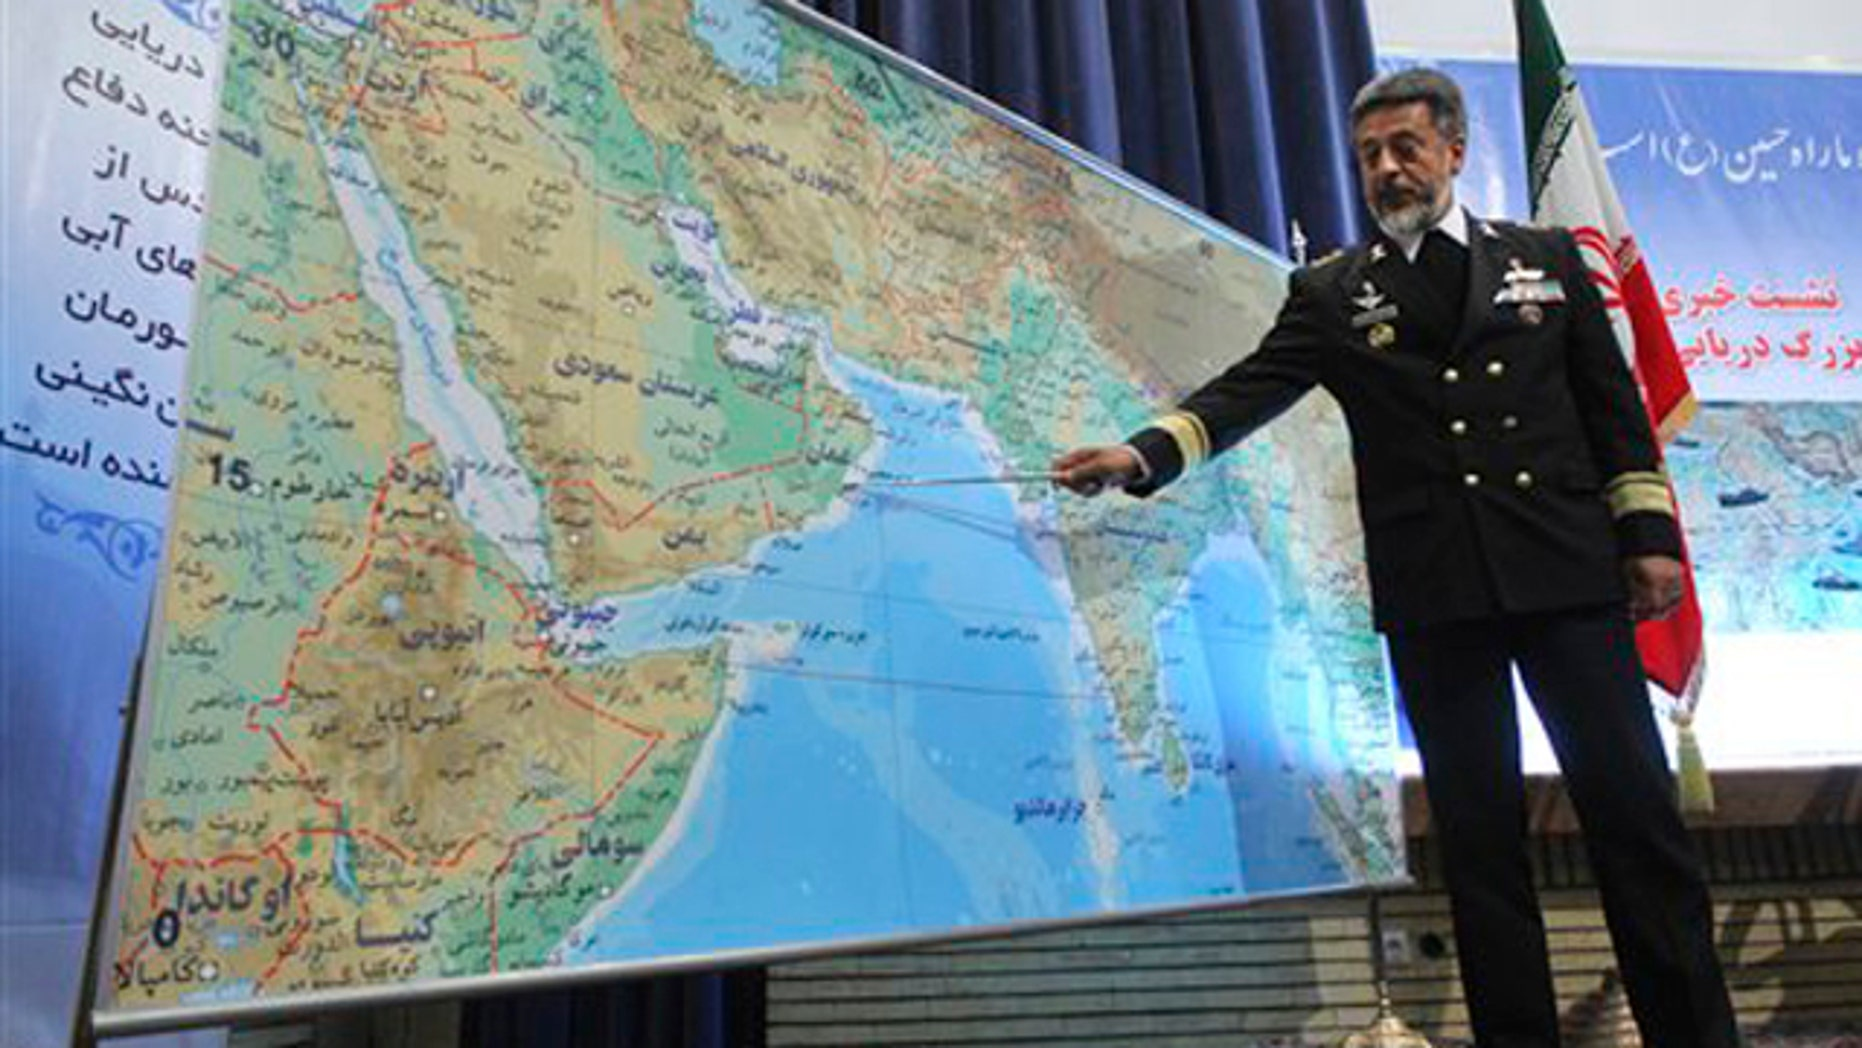 Dec. 22, 2011: Iran's navy chief Adm. Habibollah Sayyari briefs media on an upcoming naval exercise, in a press conference in Tehran, Iran.